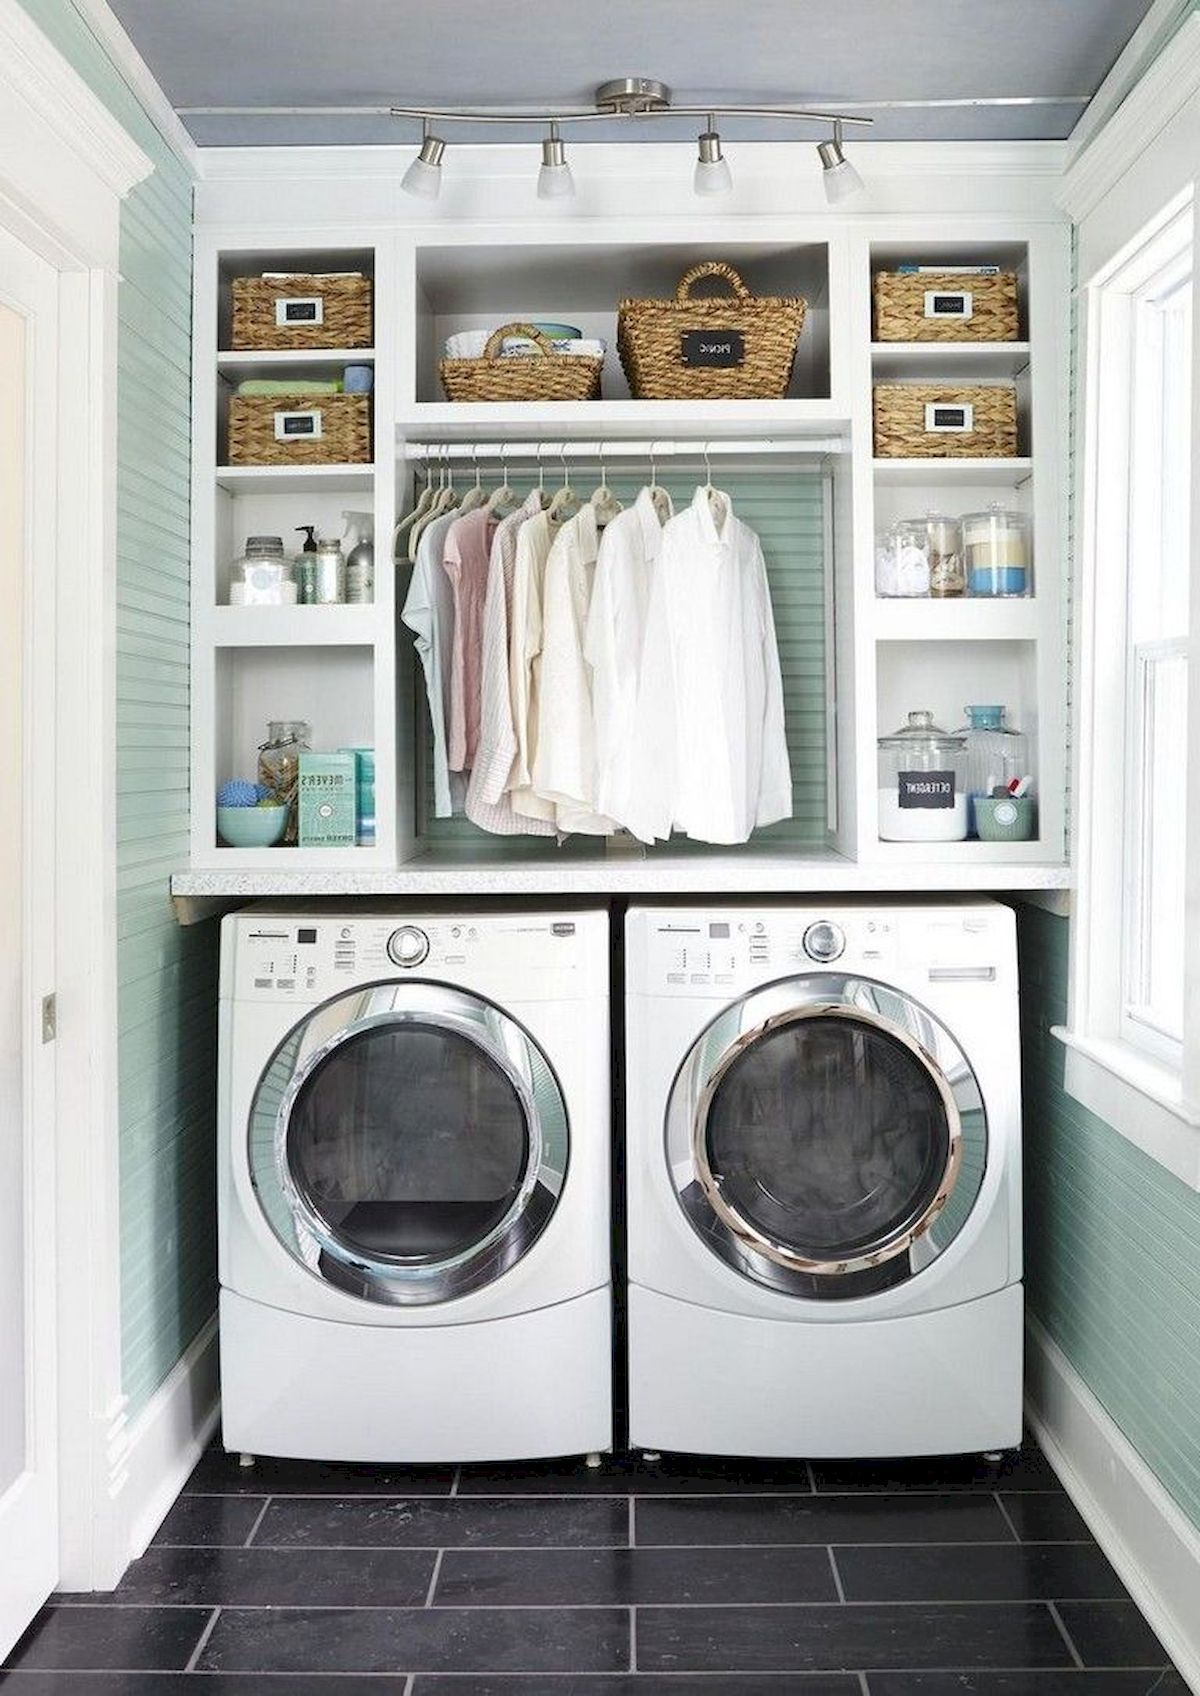 55 Best Small Laundry Room Photo Storage Ideas (26 images